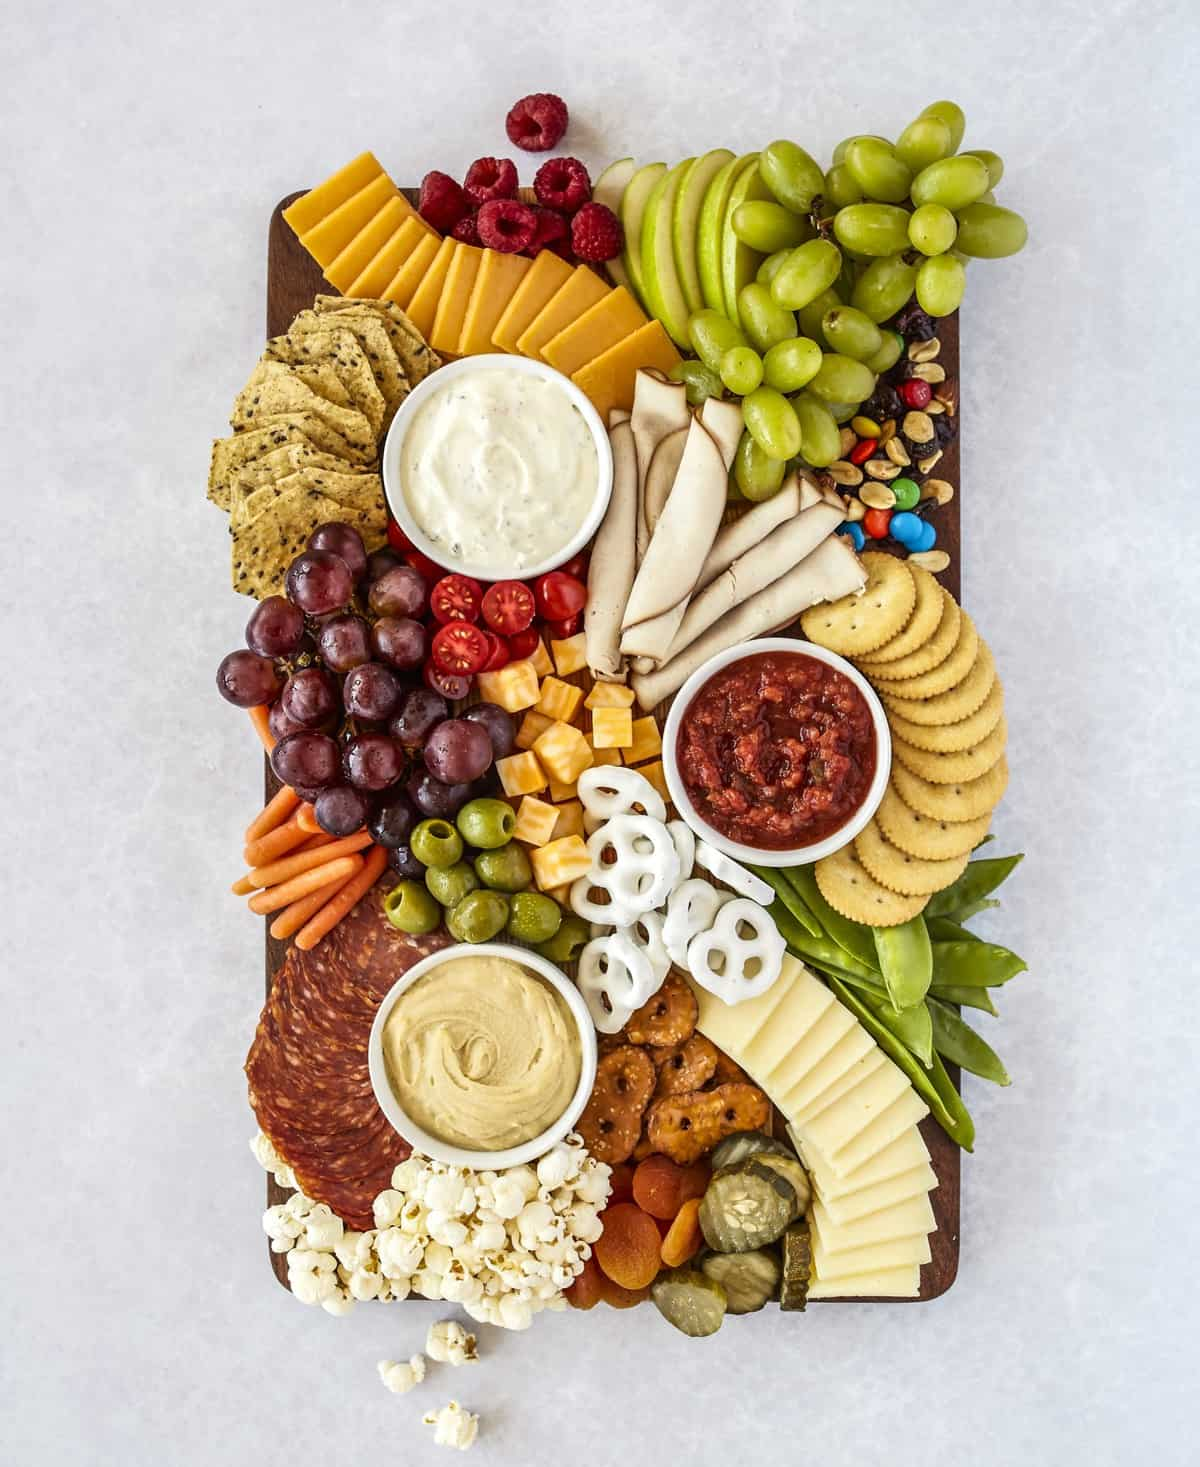 Everyday Snack Board by The BakerMama